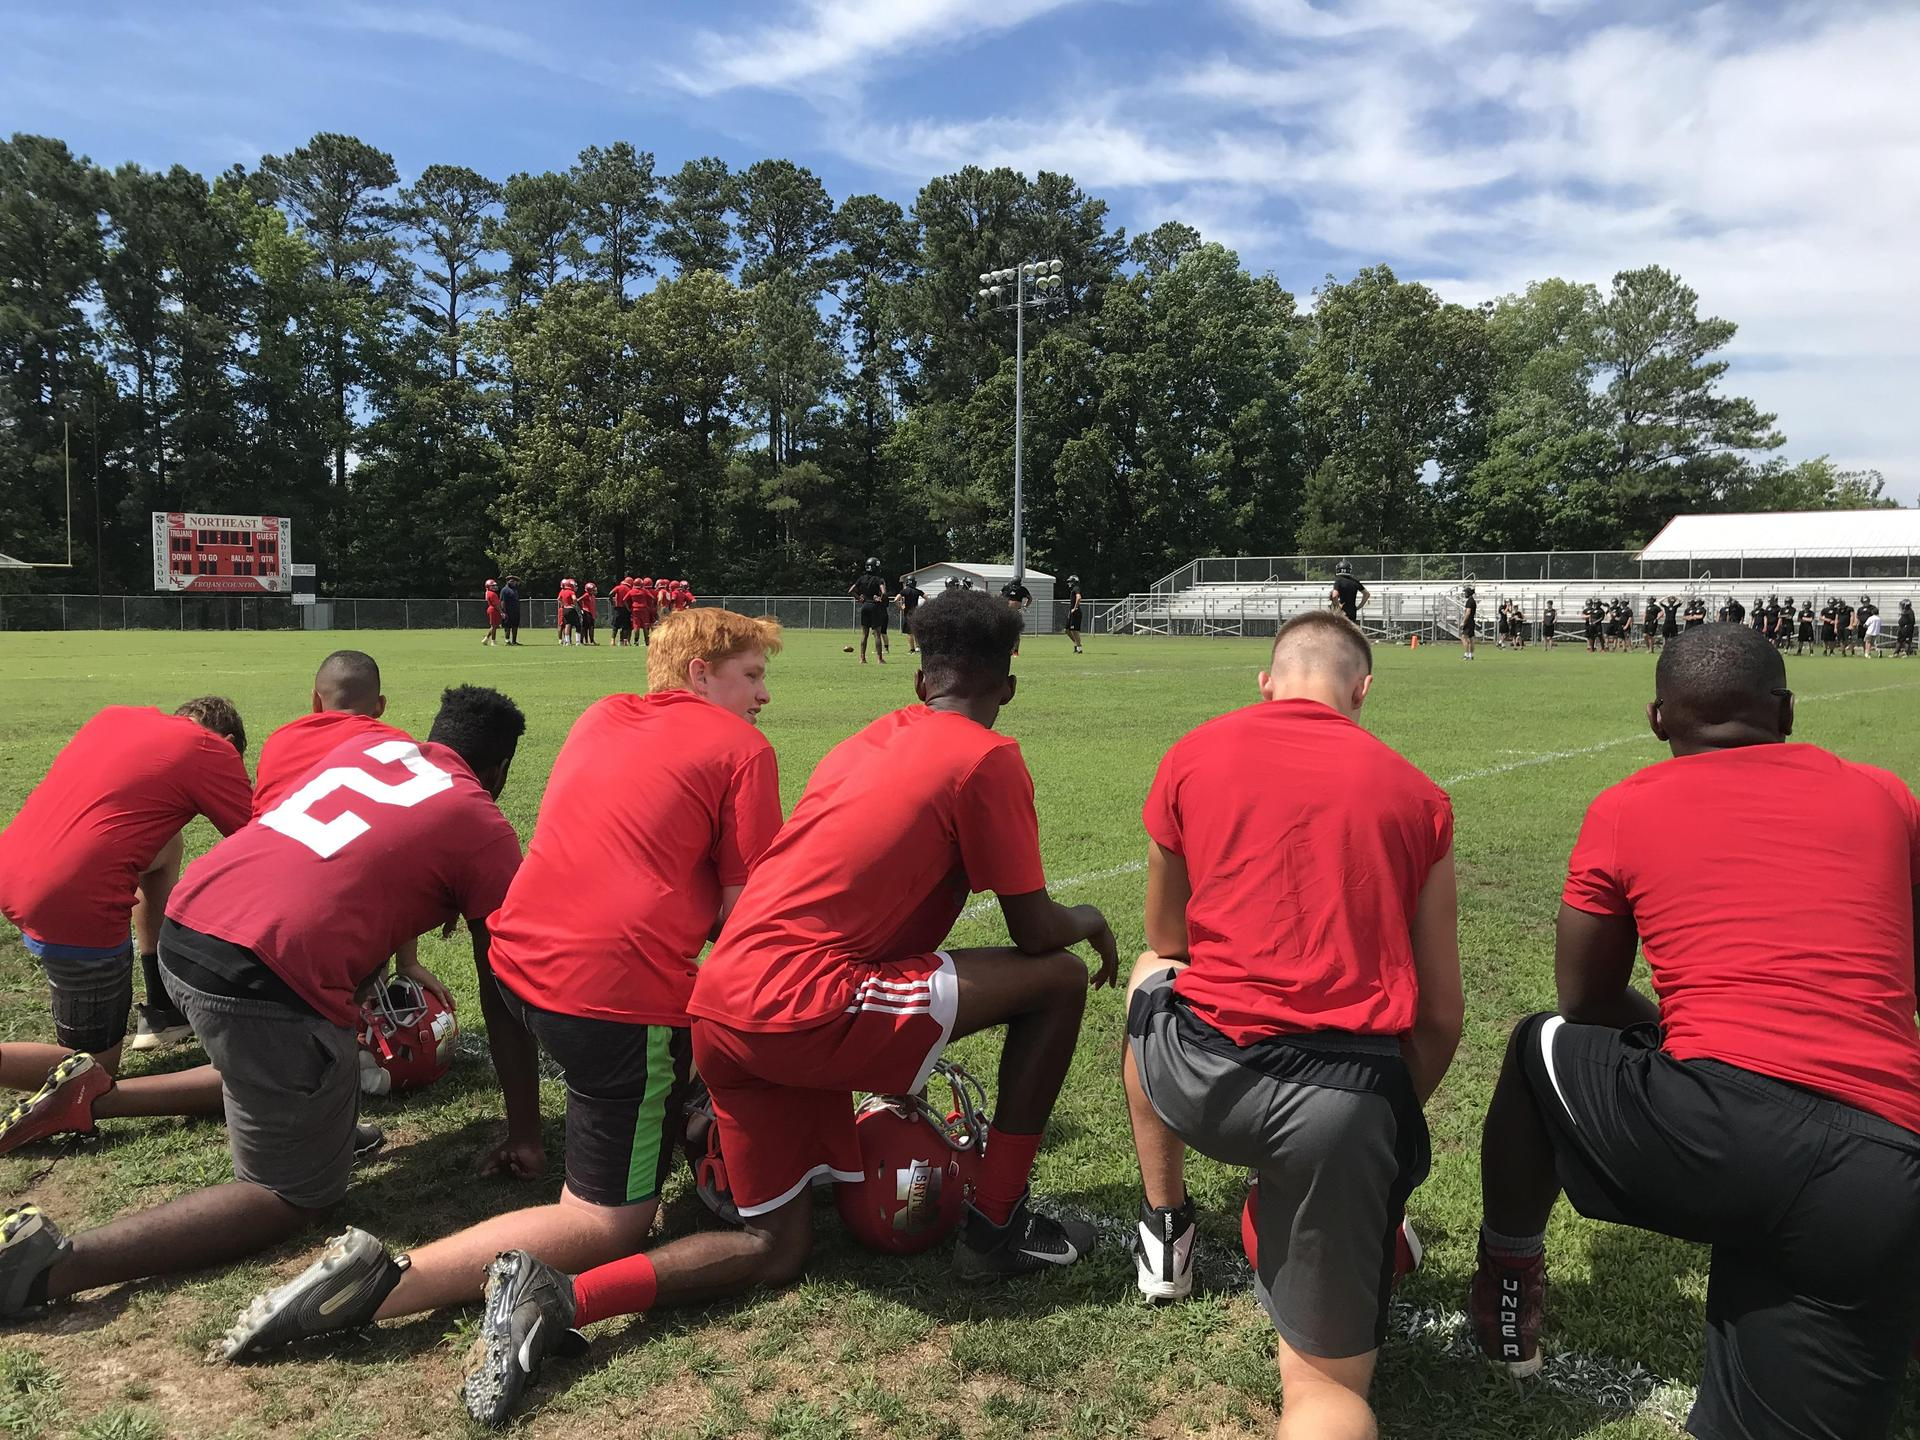 NEHS Football Players during a summer scrimmage game.